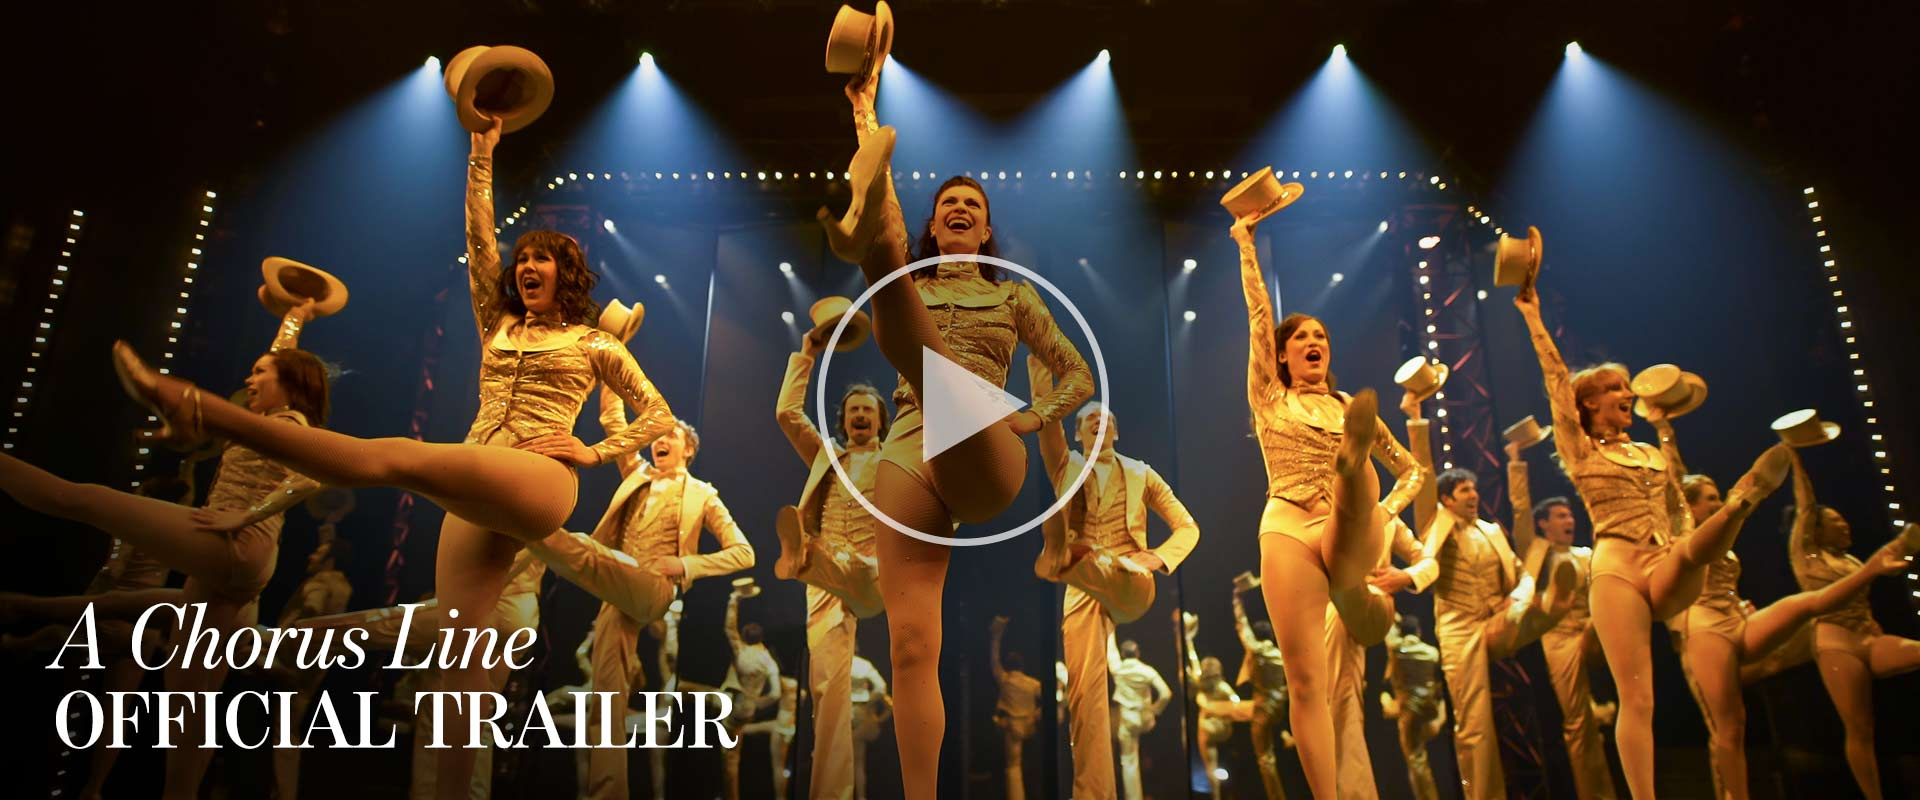 A Chorus Line Official Trailer